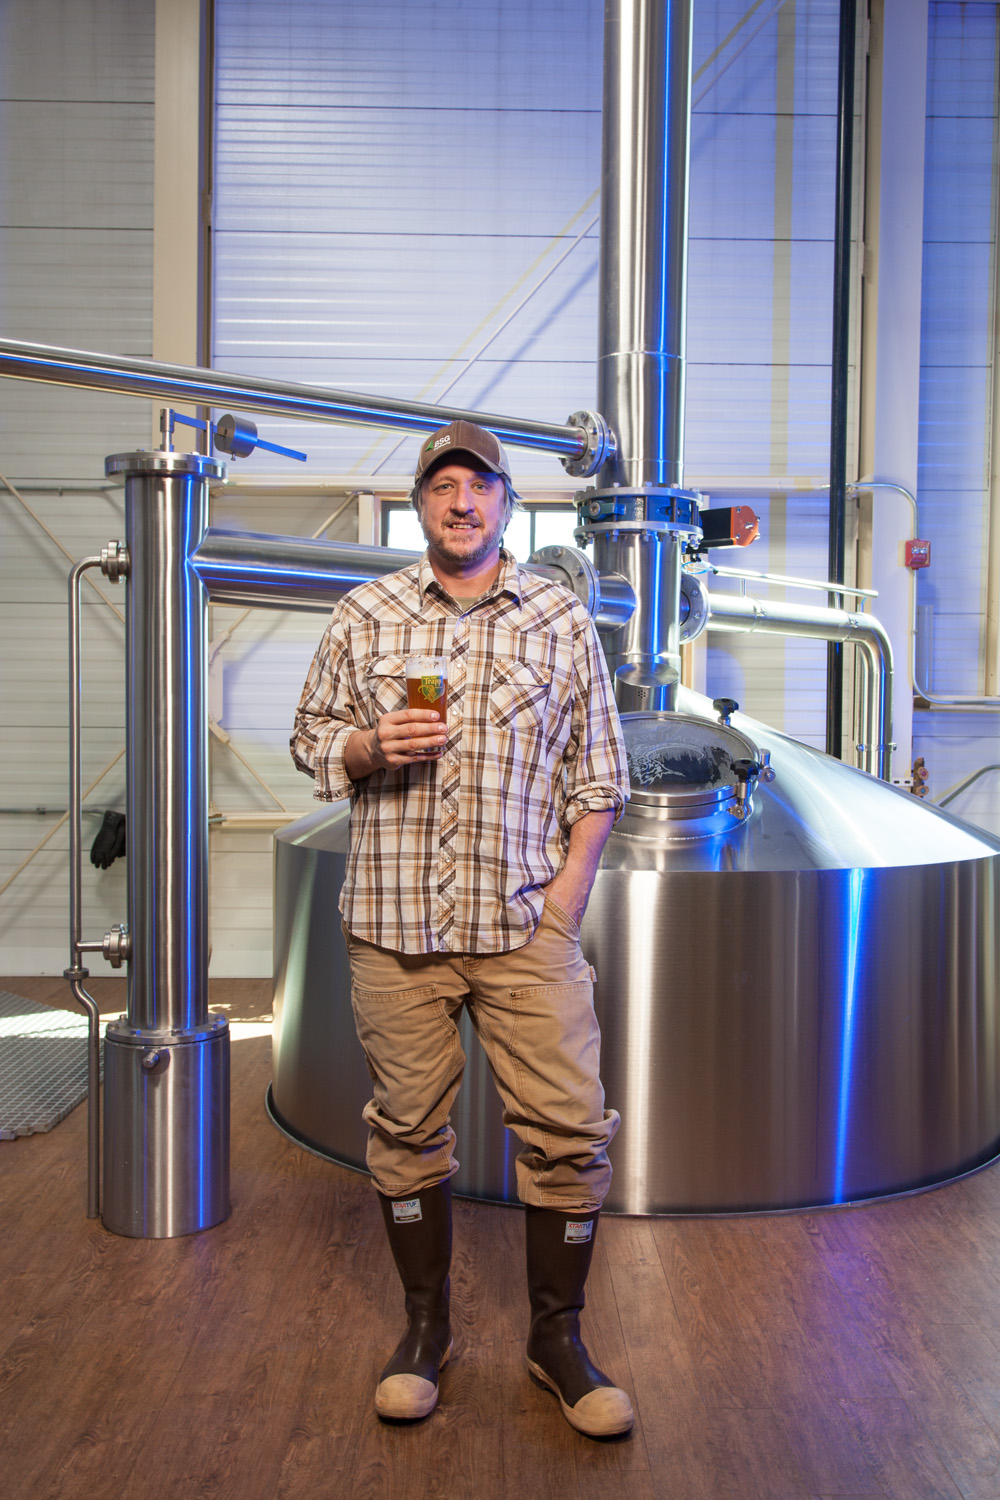 J.P. Williams, Brewmaster von Trapp Brewing Co. Stowe, VT. Established in 2010